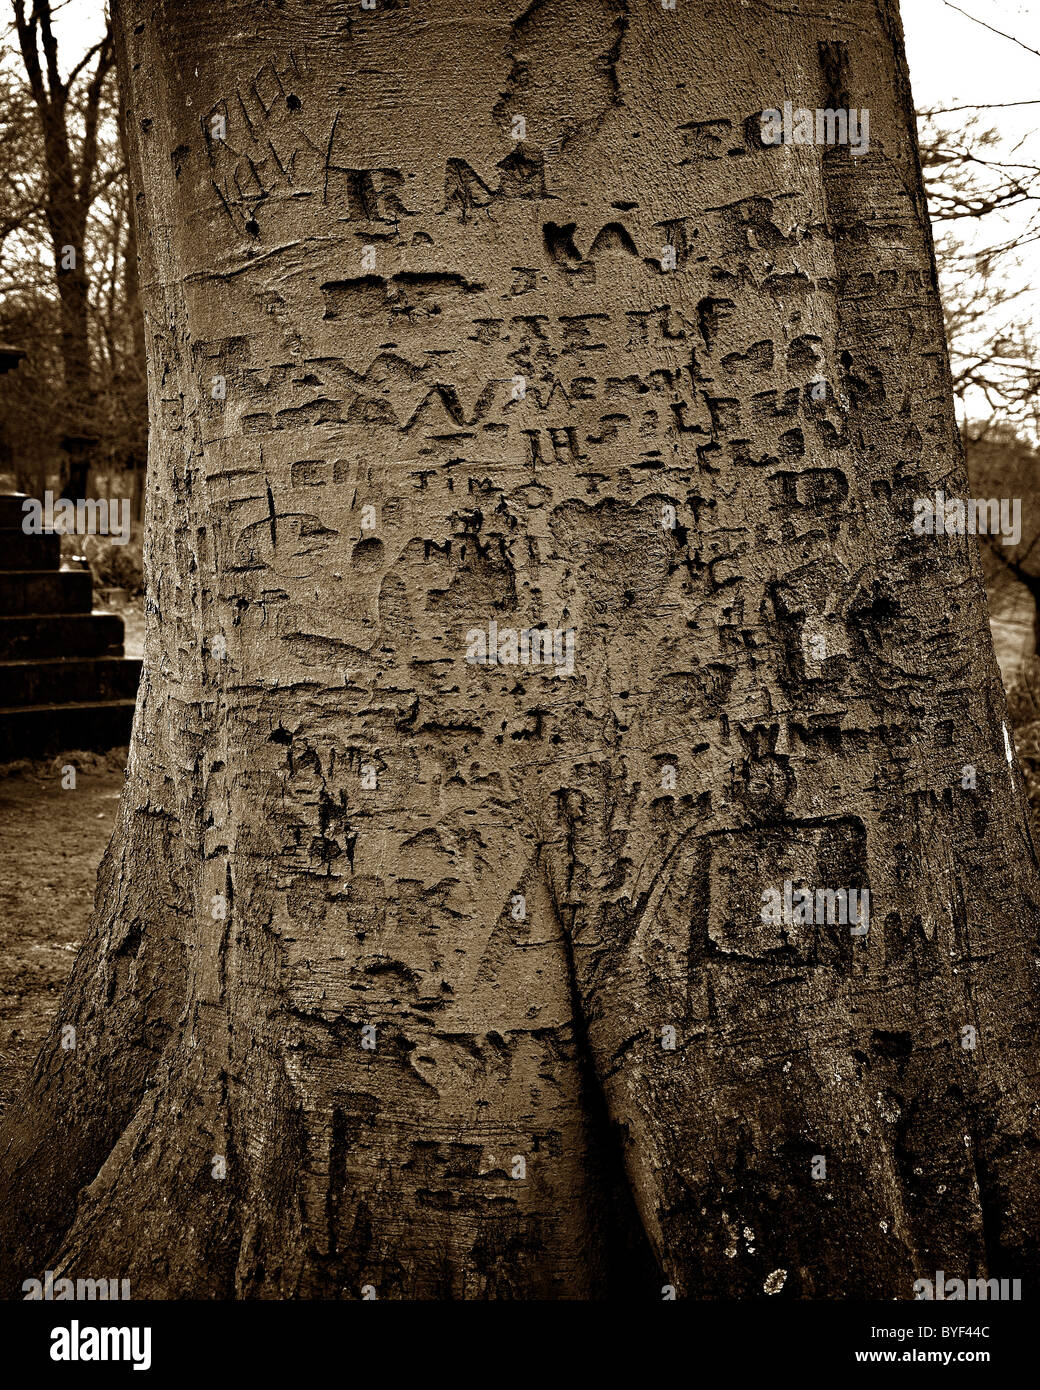 Dunham Massey National Park tree names carving lover lovers love - Stock Image